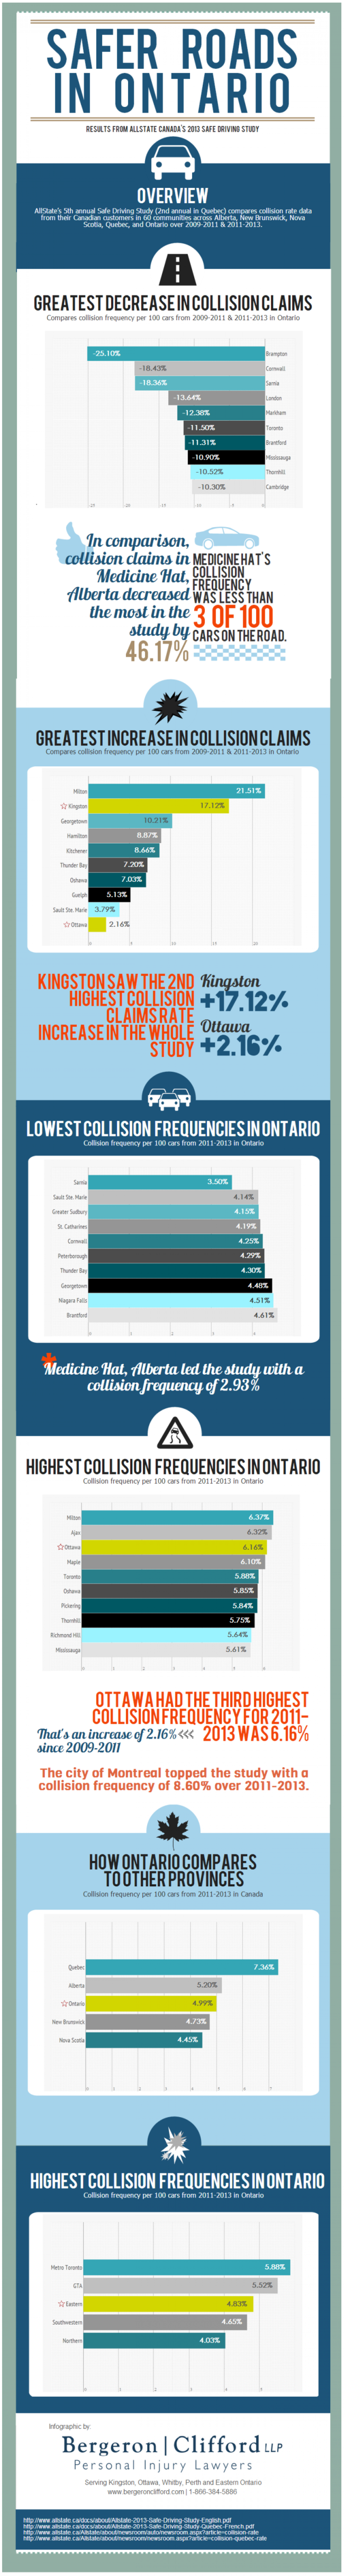 Safer Roads in Ontario Infographic